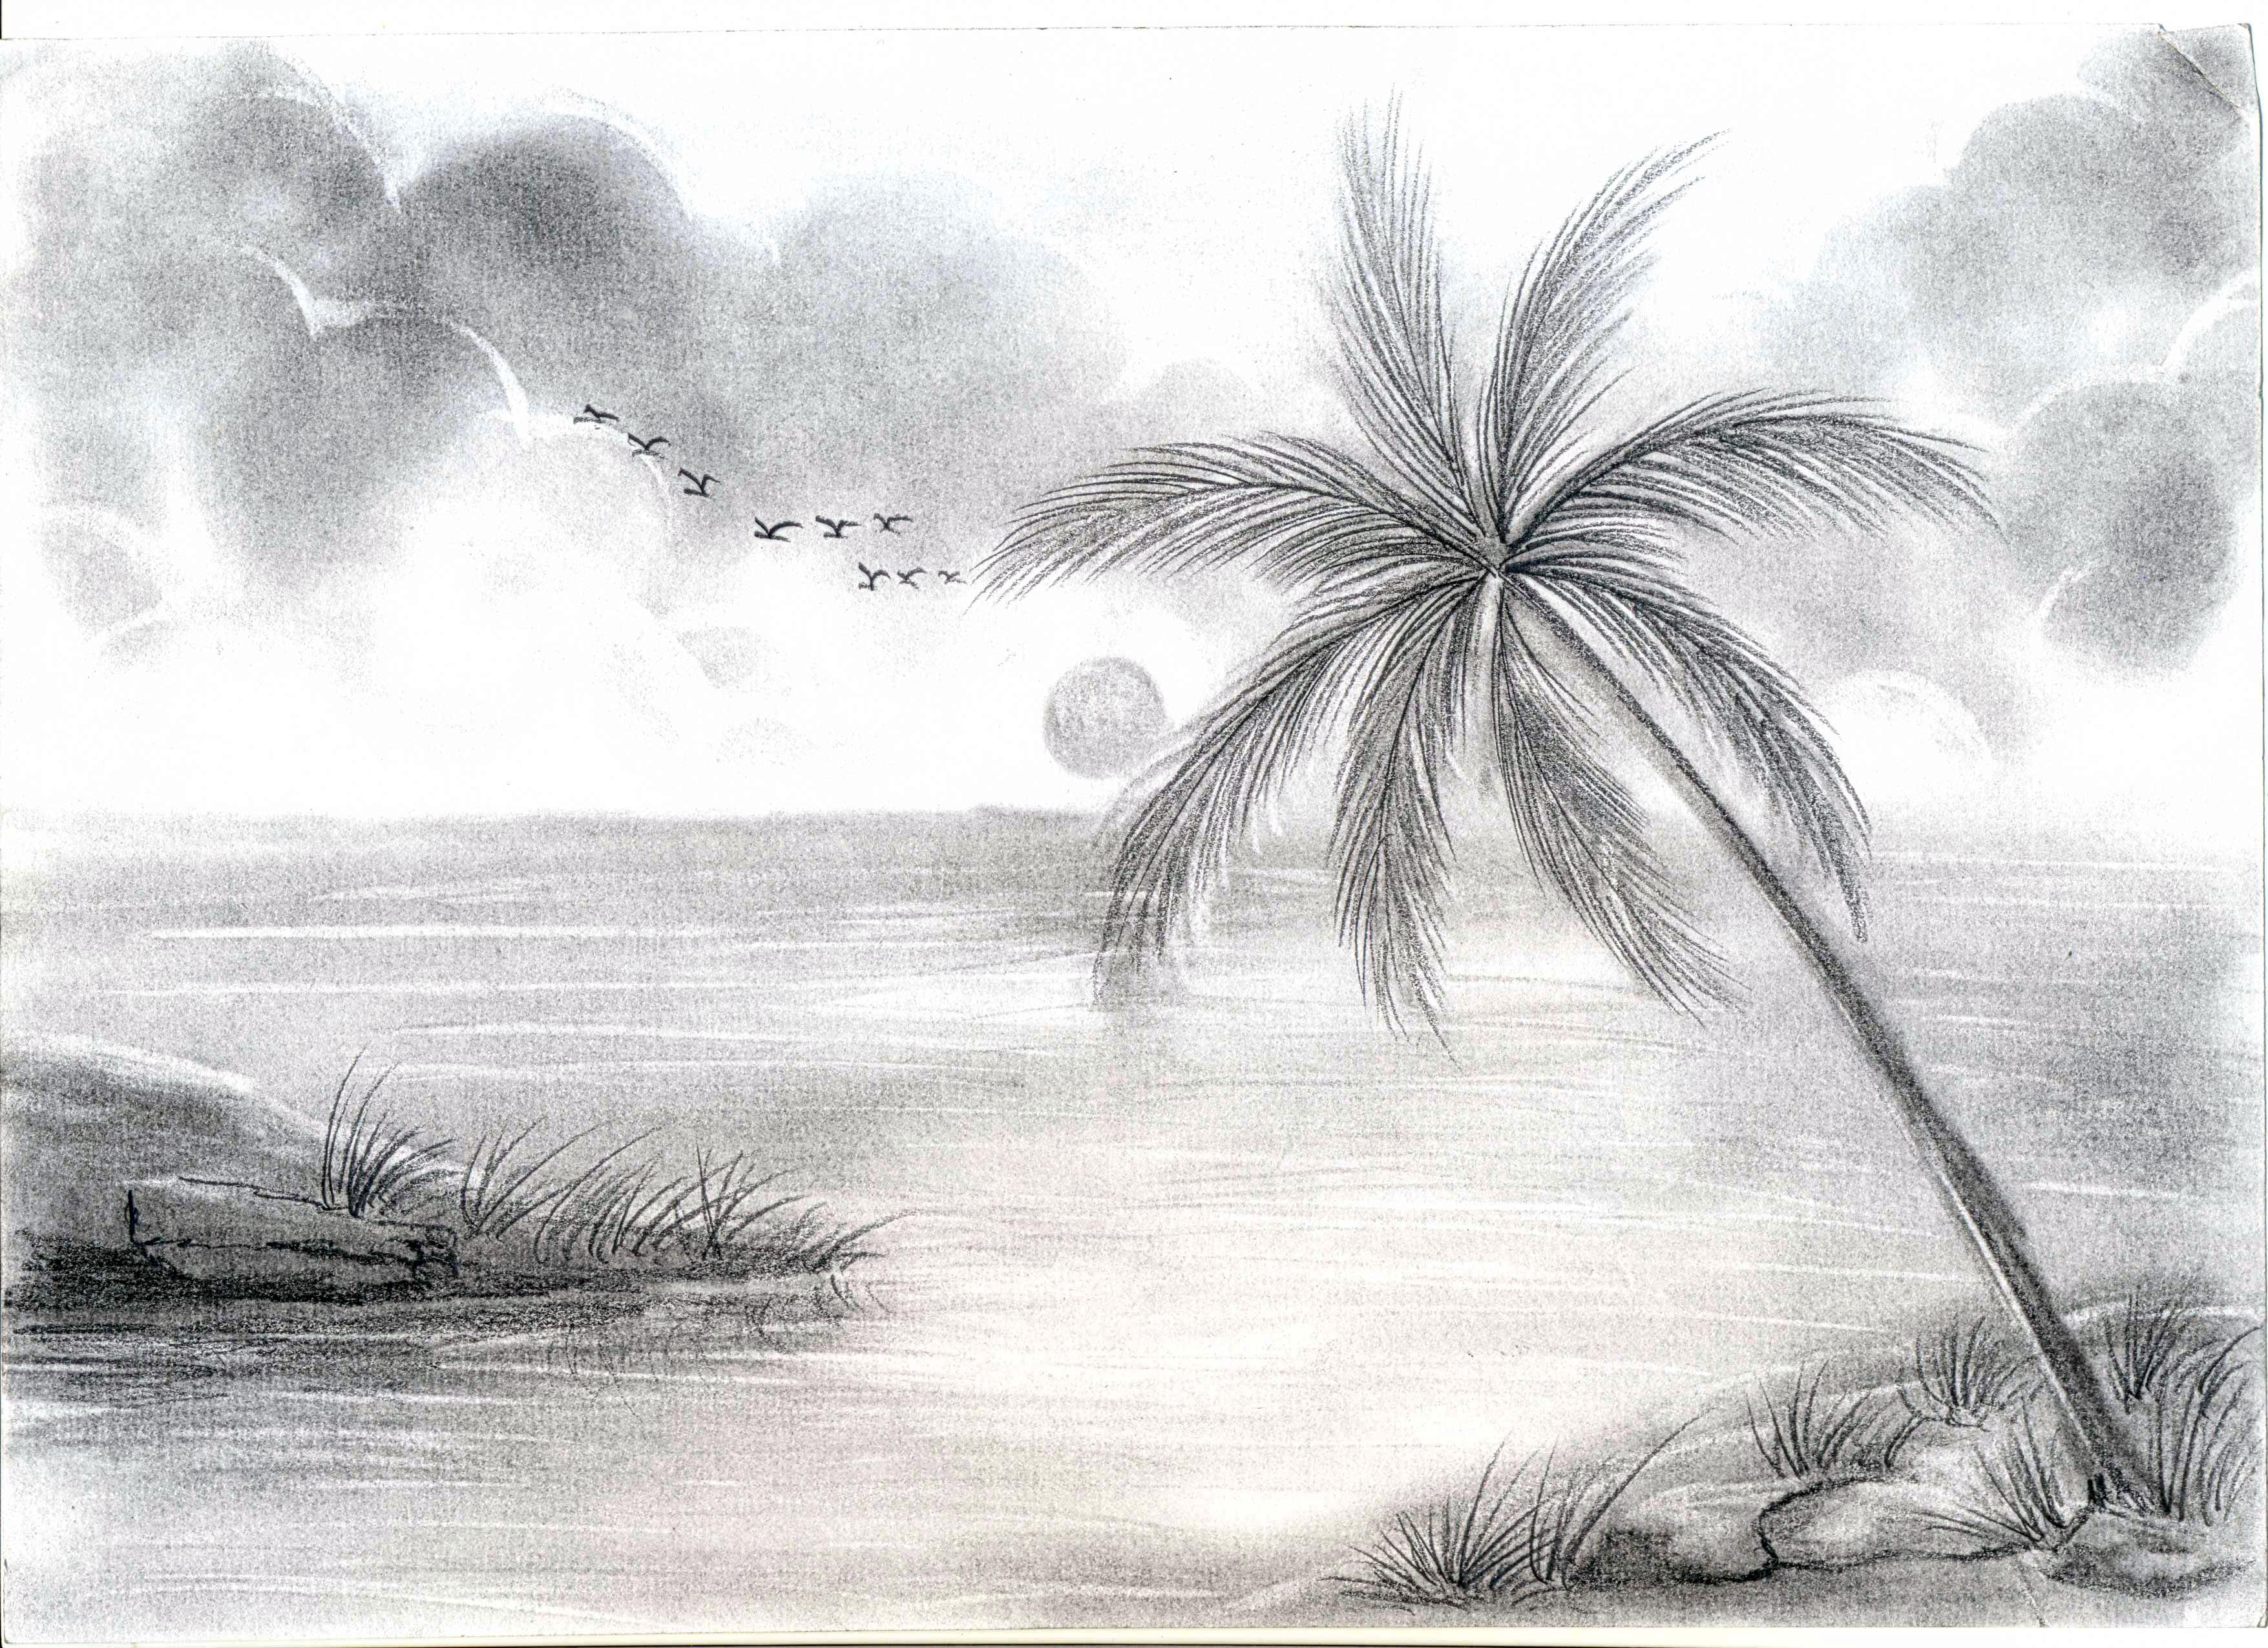 Drawn scenic shading Drawing In Drawing Pencil Pencil